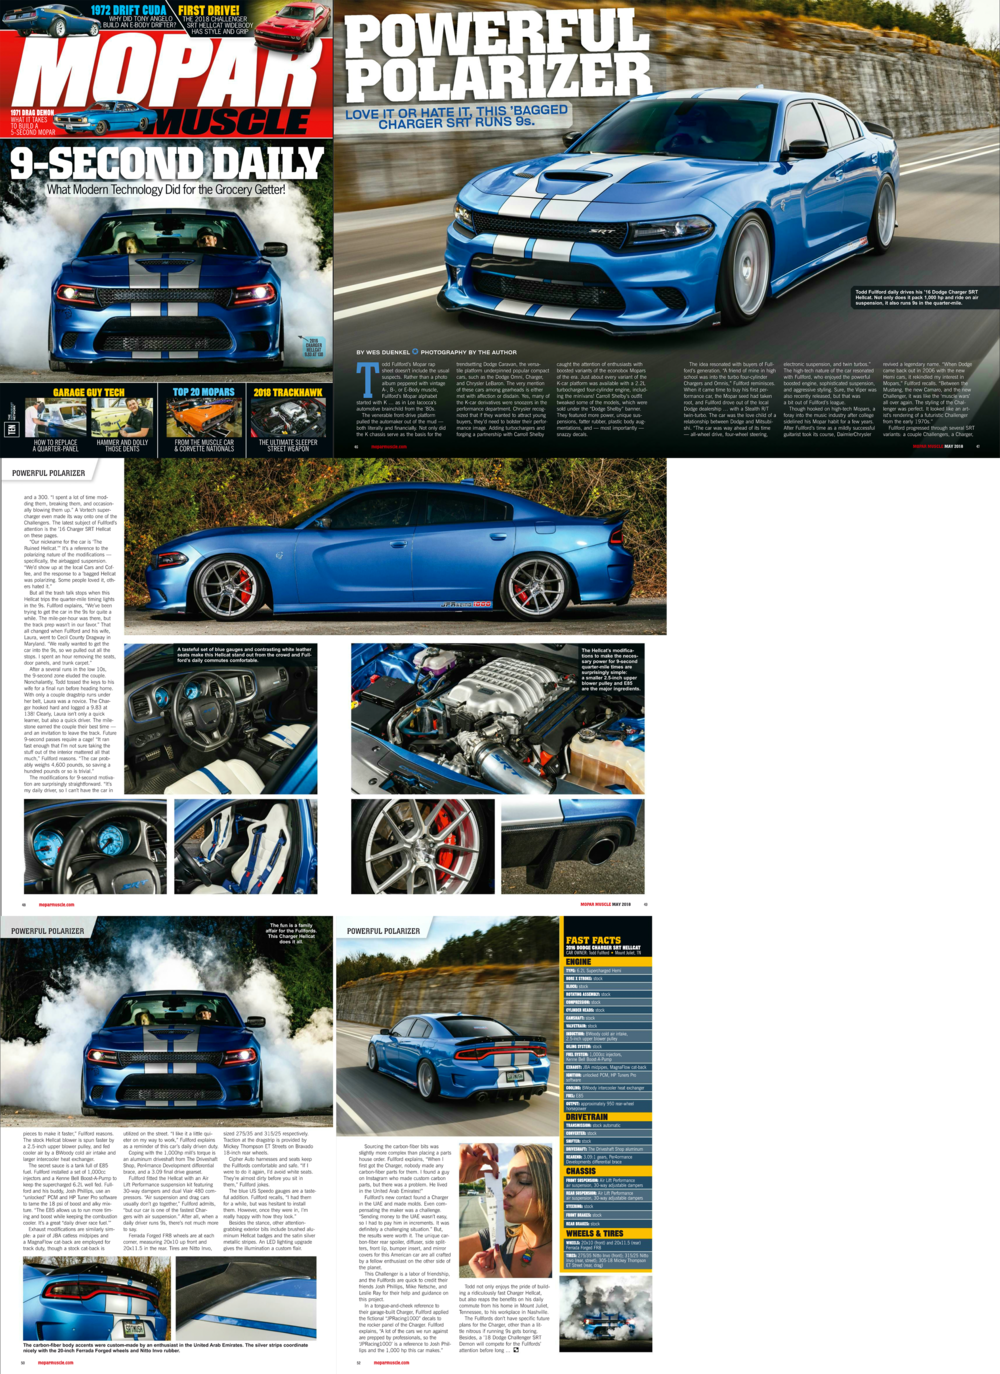 Published in the May 2018 issue of  Mopar Muscle Magazine